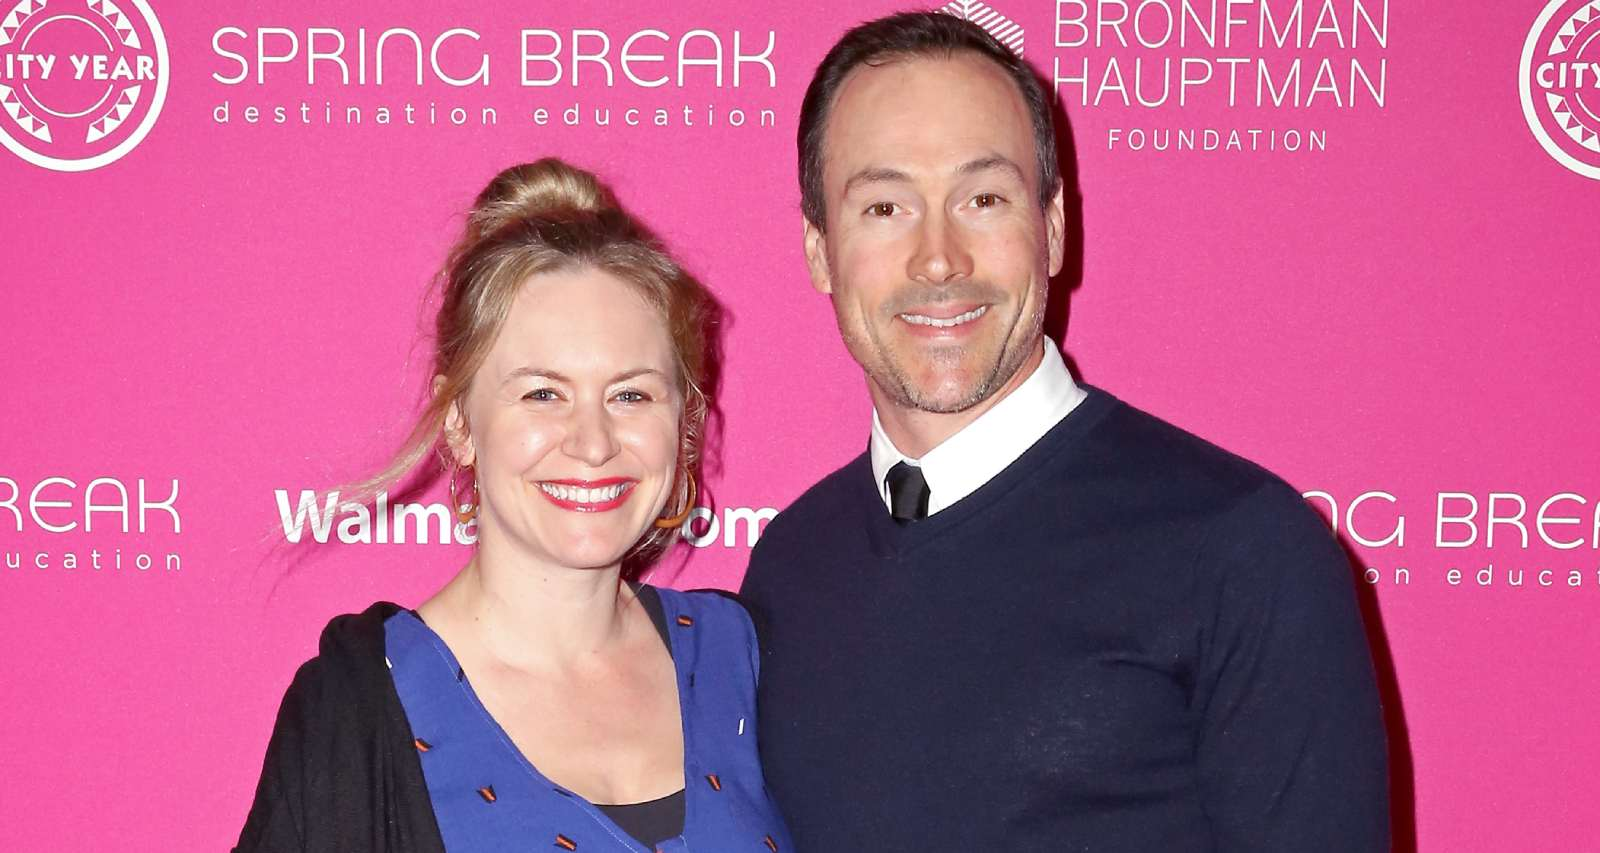 Laina Rose Thyfault Wiki, Age, Family, Parents, Kids, Education and Facts About Chris Klein's Wife